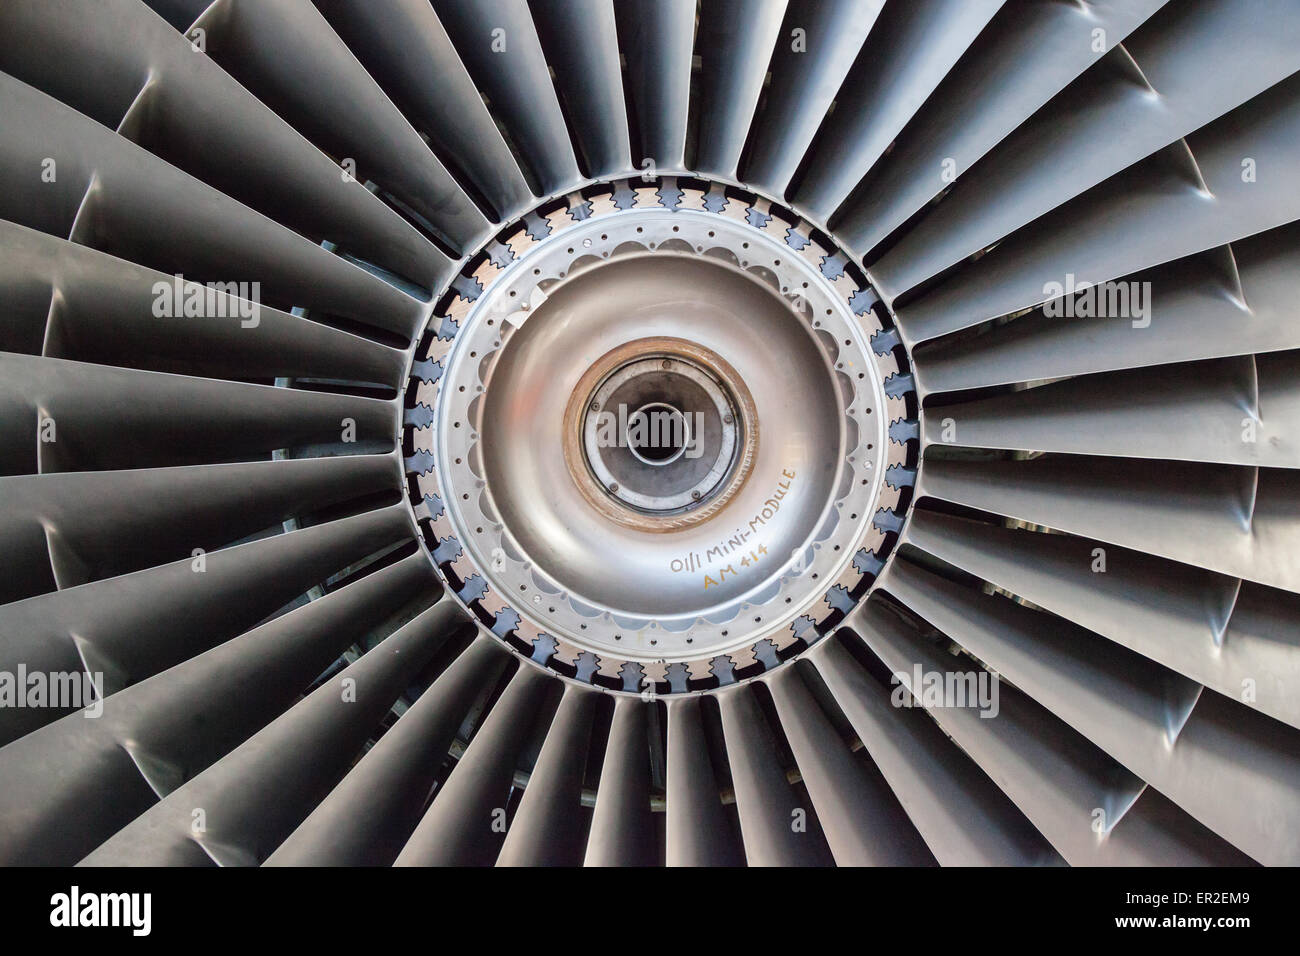 A view of the front fan from a Rolls-Royce RB211 turbofan engine. - Stock Image